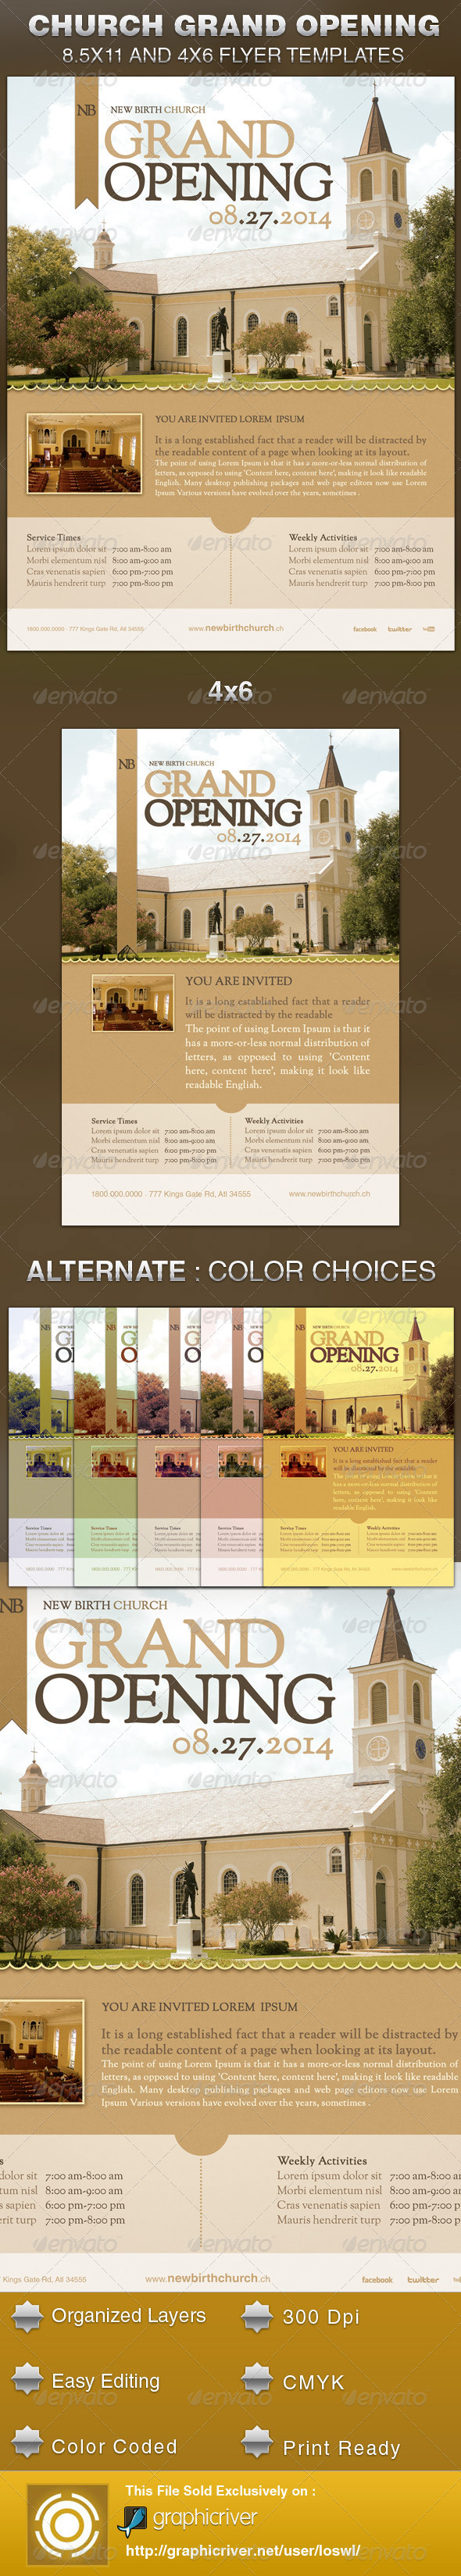 church grand opening flyer template on behance. Black Bedroom Furniture Sets. Home Design Ideas